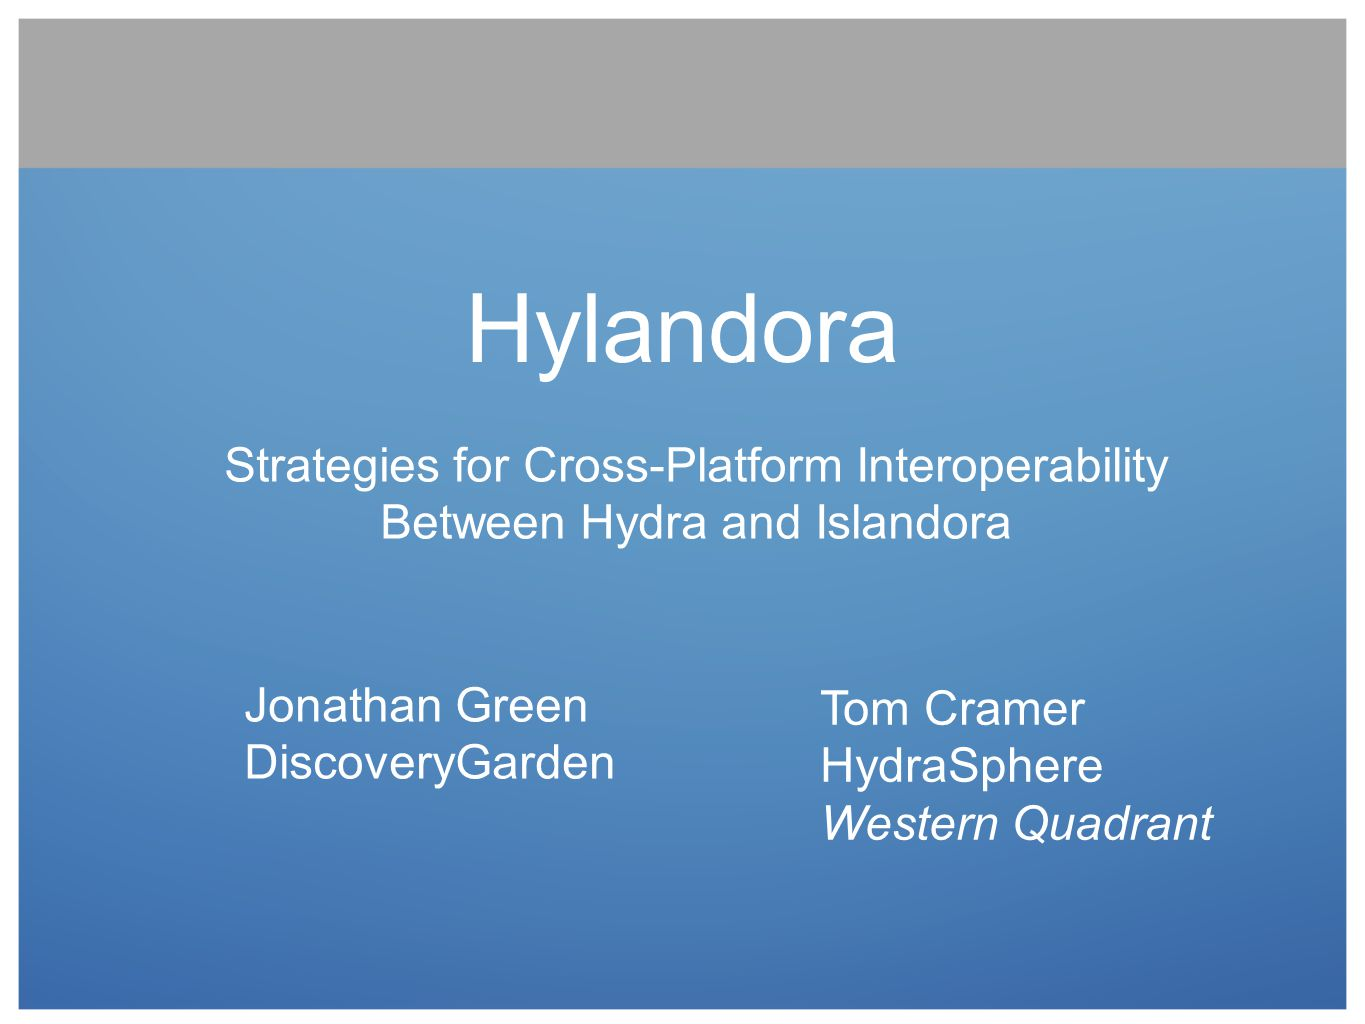 Hylandora Strategies for Cross-Platform Interoperability Between Hydra and Islandora. Jonathan Green DiscoveryGarden.